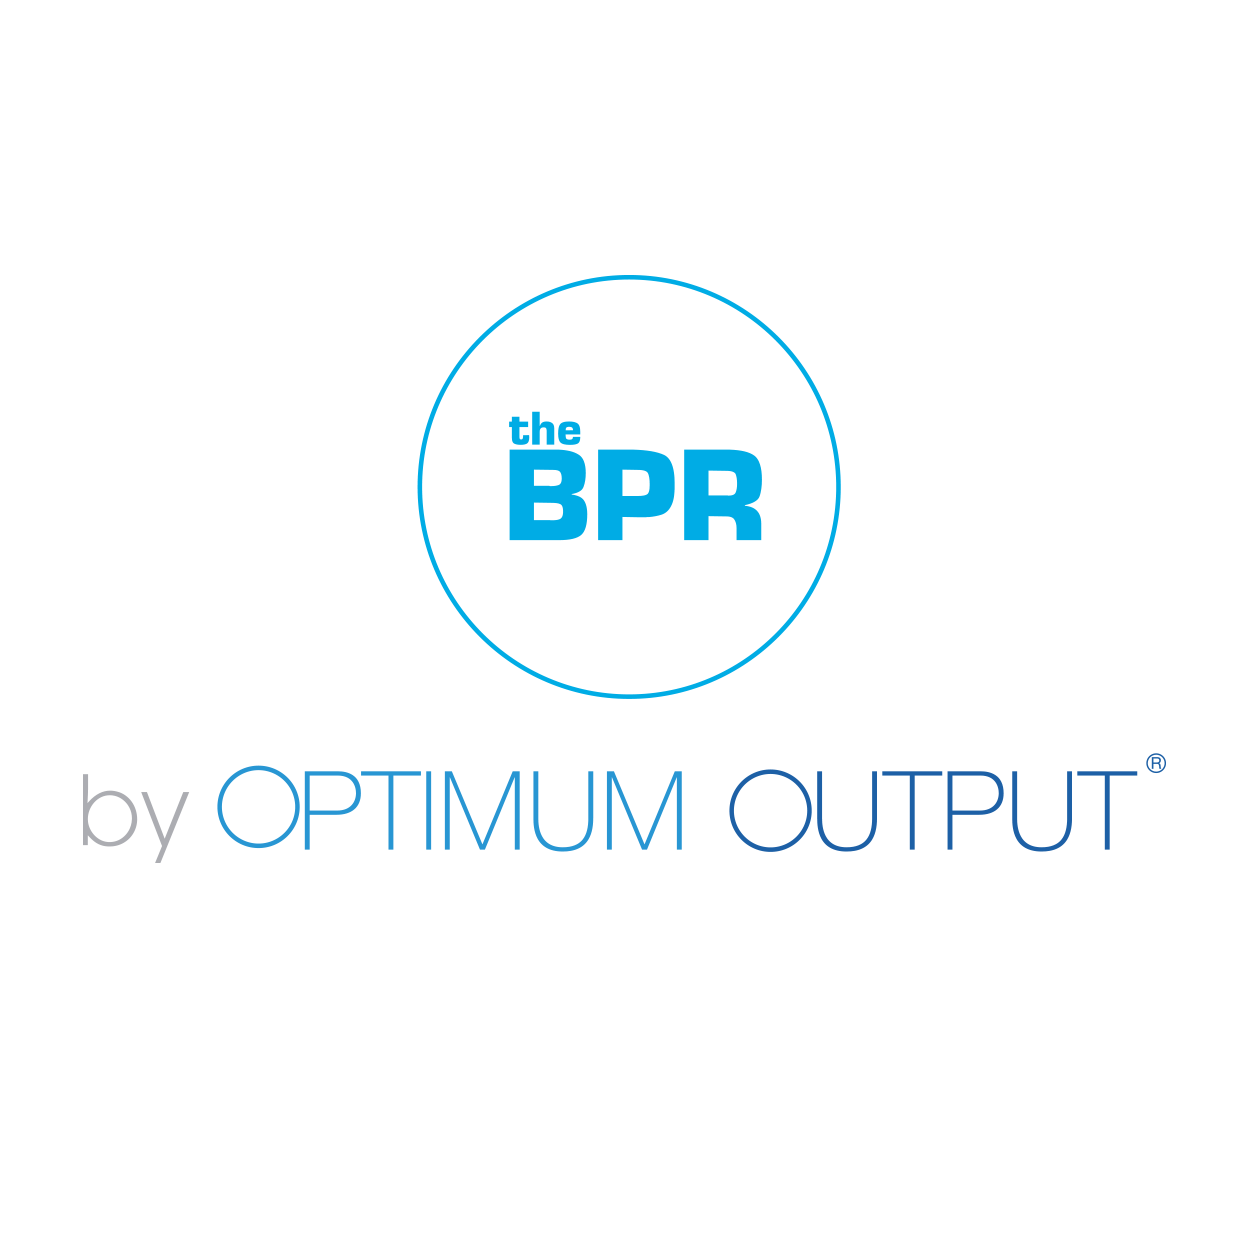 The BPR by Optimum Output